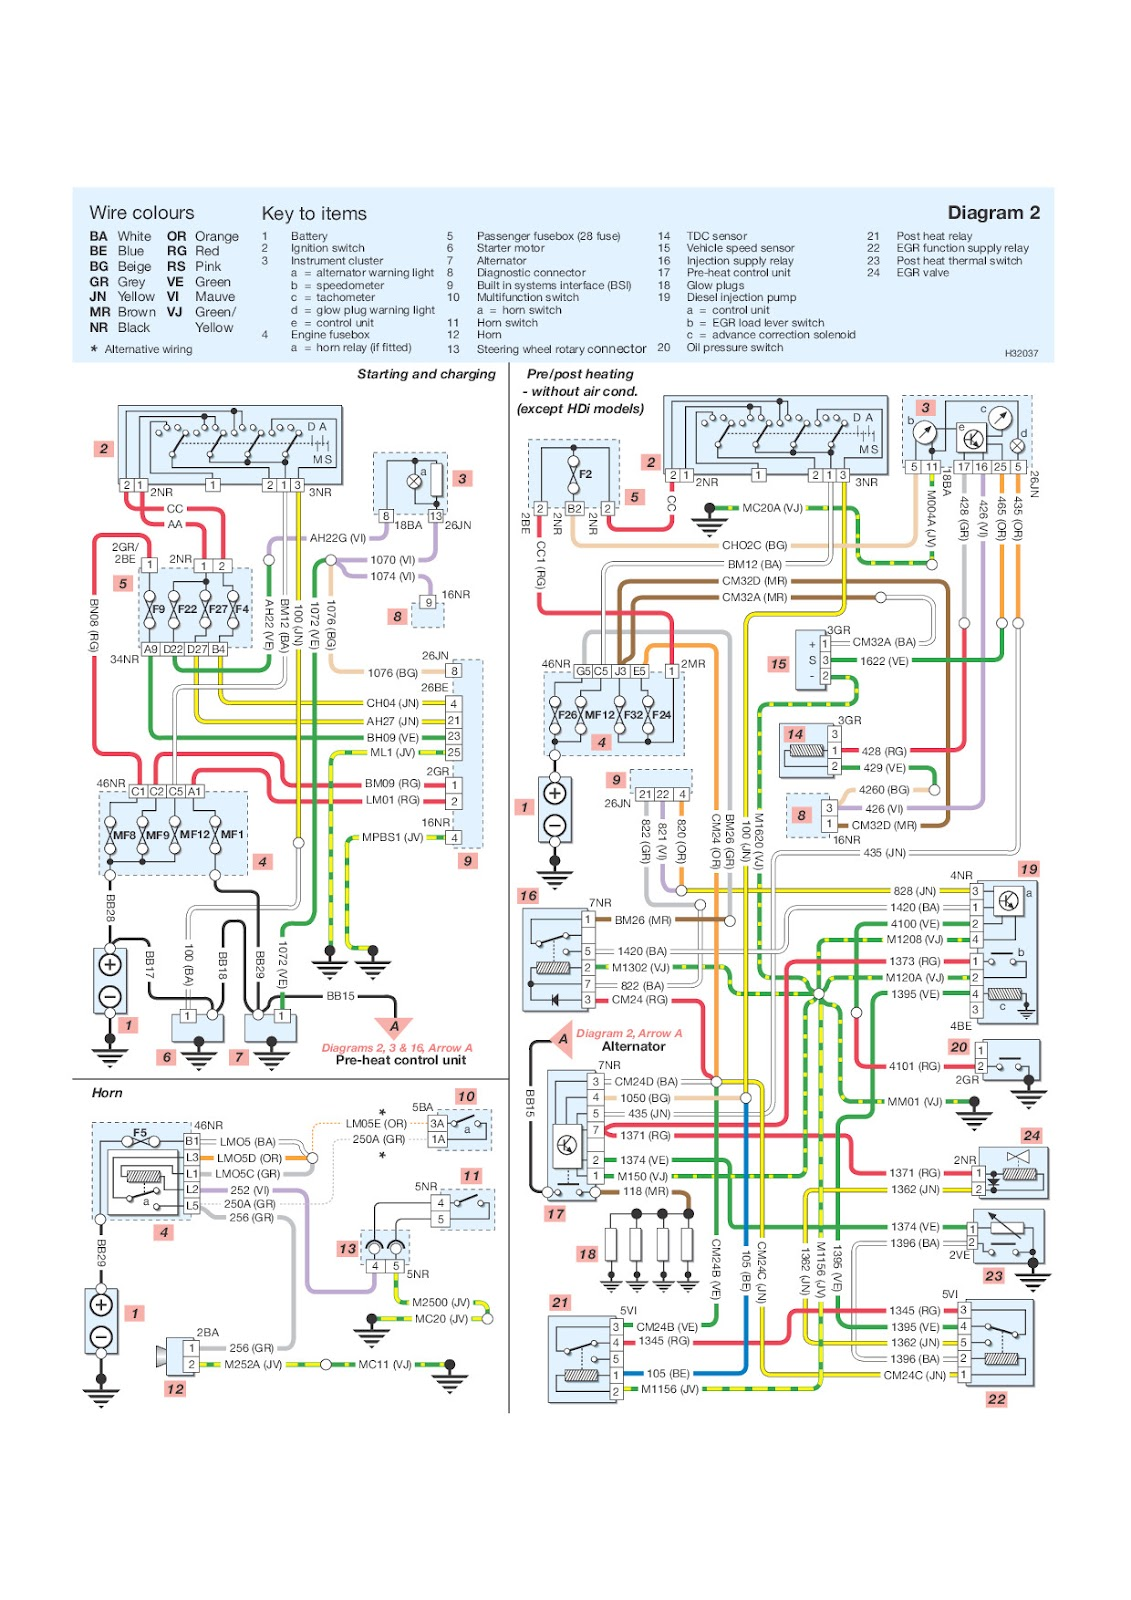 peugeot+206 1 peugeot e7 wiring diagram peugeot wiring diagrams instruction peugeot 206 headlight wiring diagram at gsmx.co